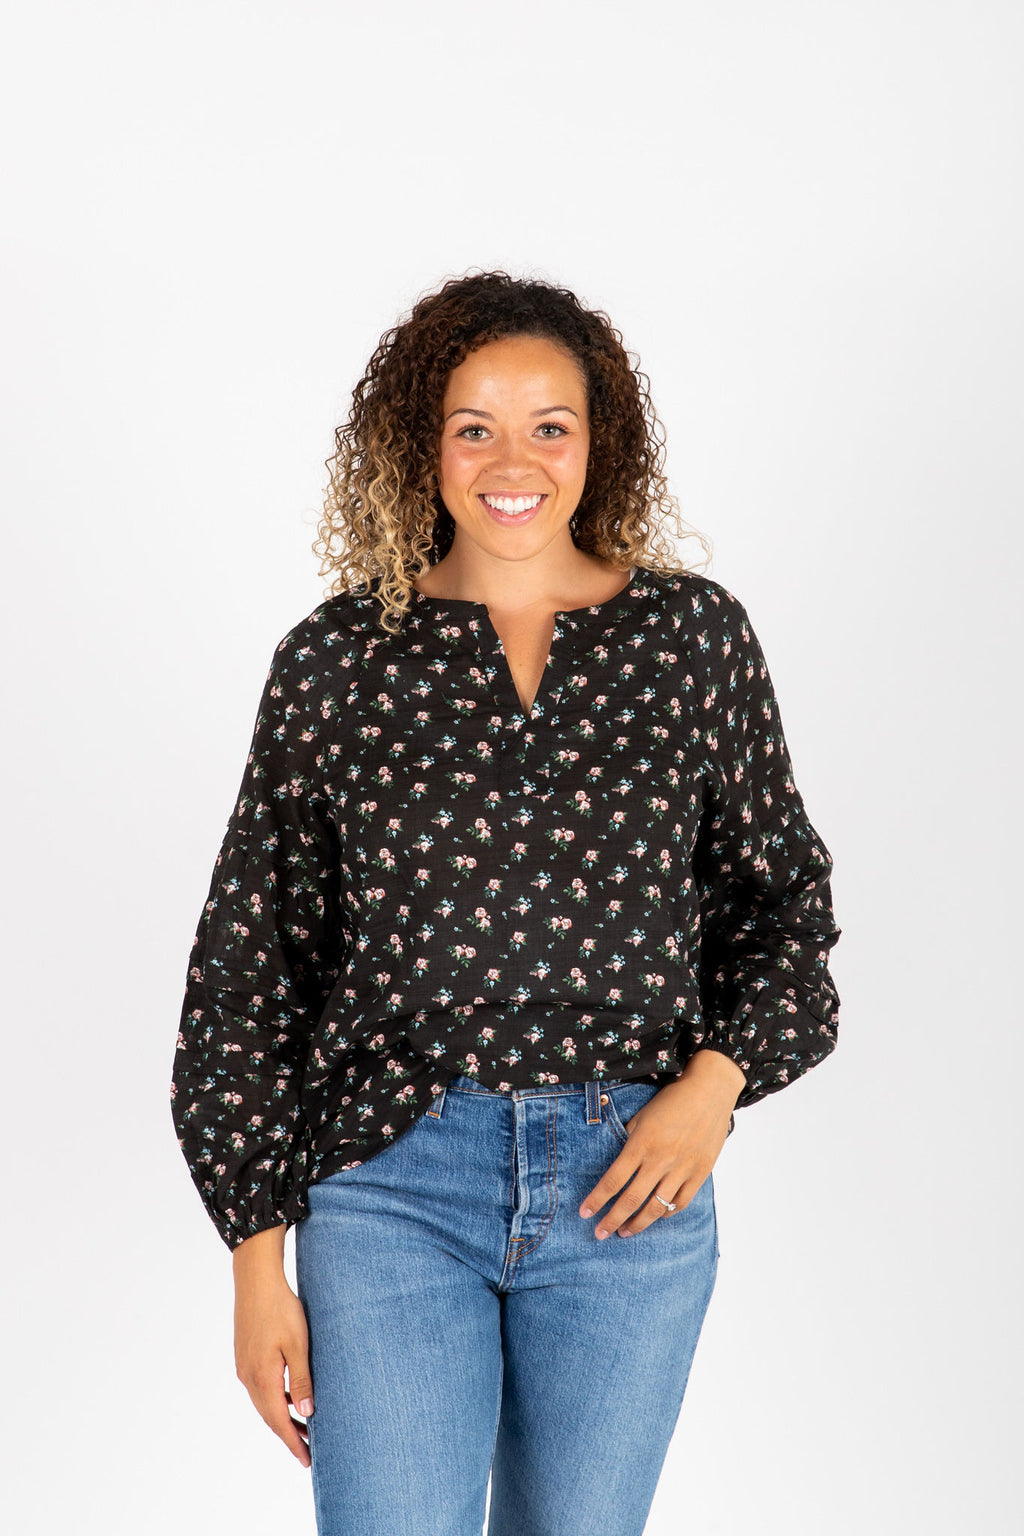 The Kaley Floral Peasant Blouse in Black, studio shot; front view